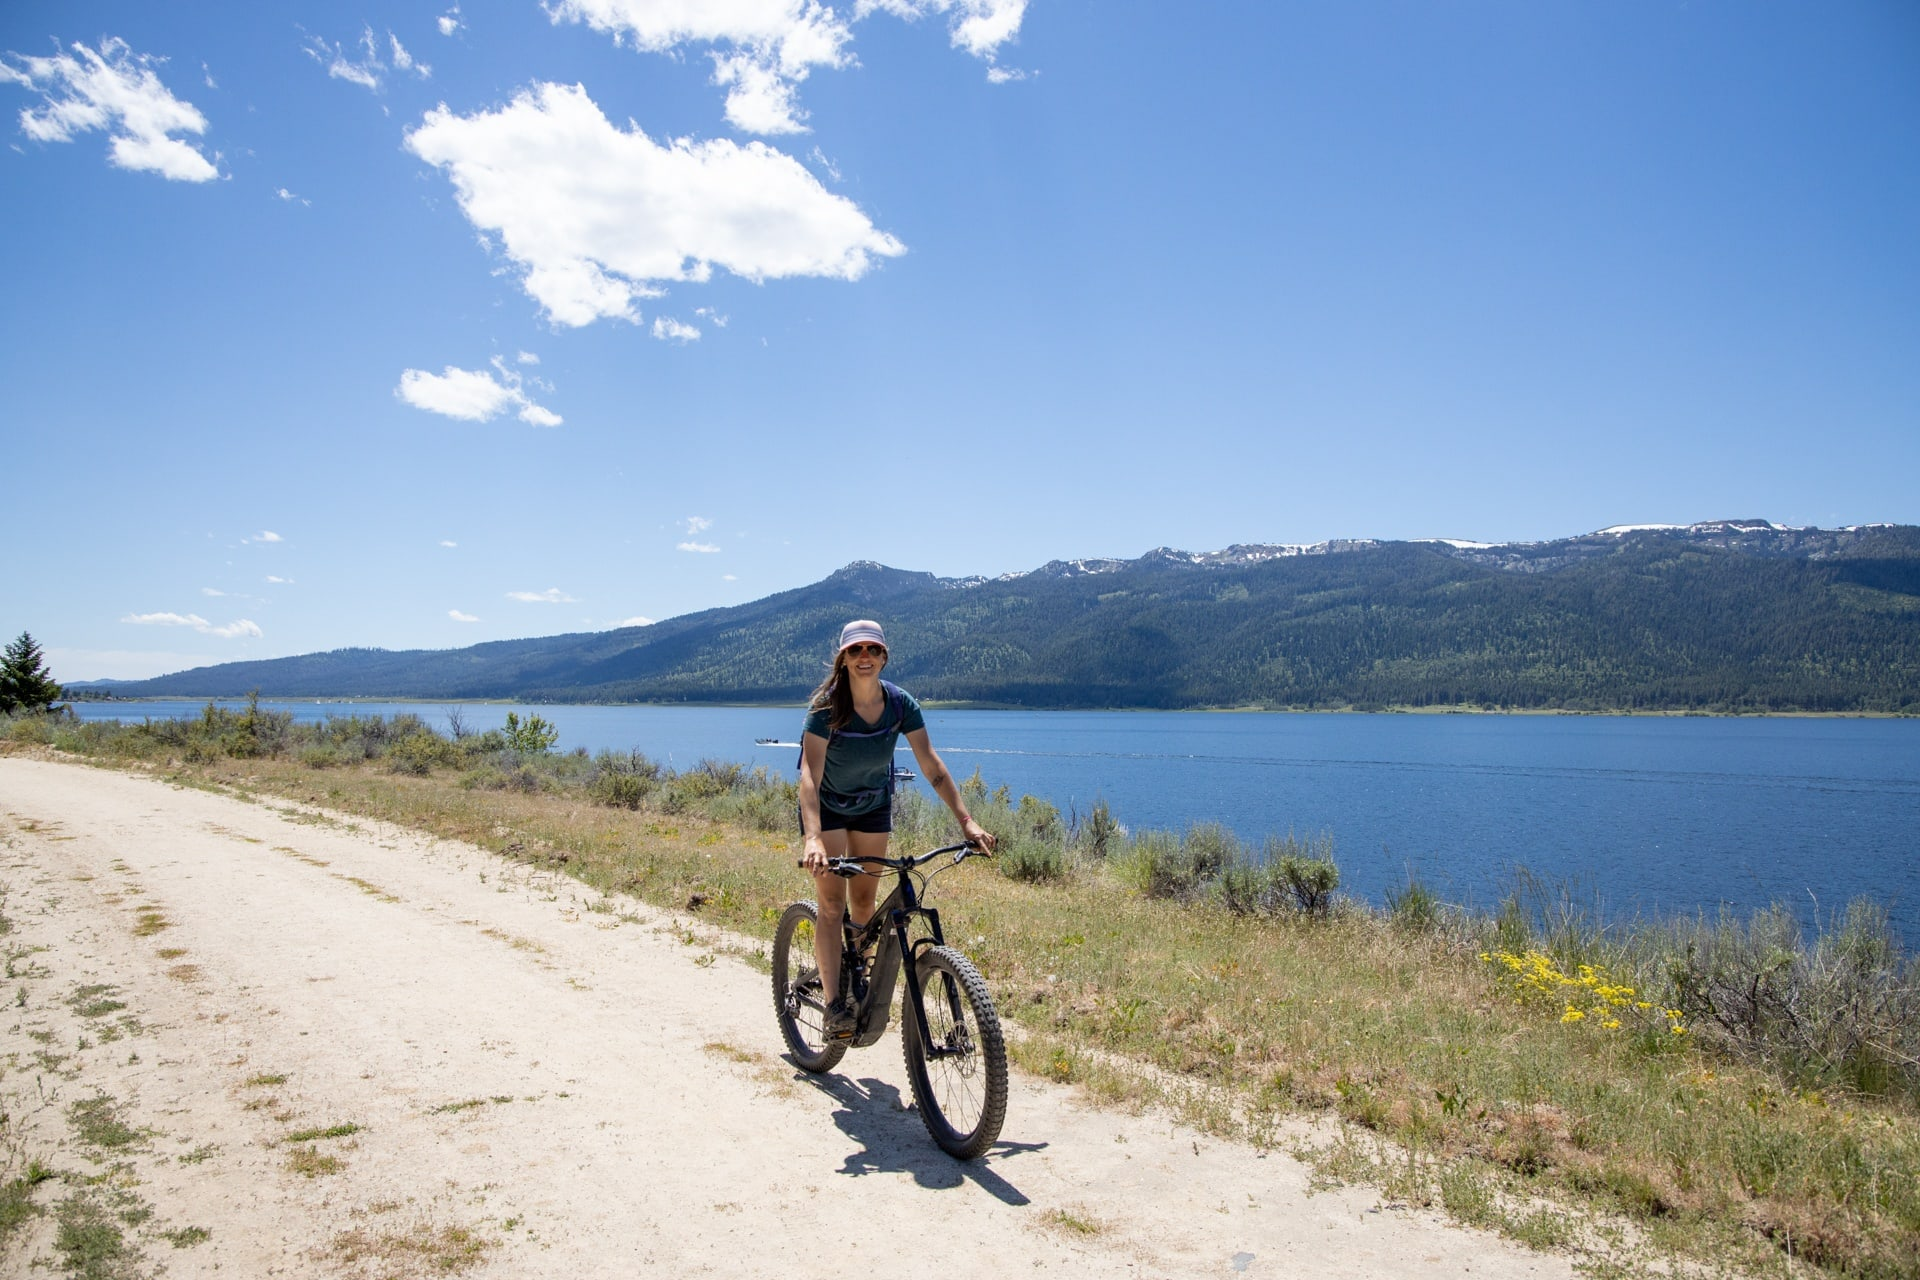 Biking the Crown Point Trail // Hot springs, hiking, off-roading, biking, and more. Explore the best outdoor recreation in Cascade with this 4-day Cascade Idaho itinerary.